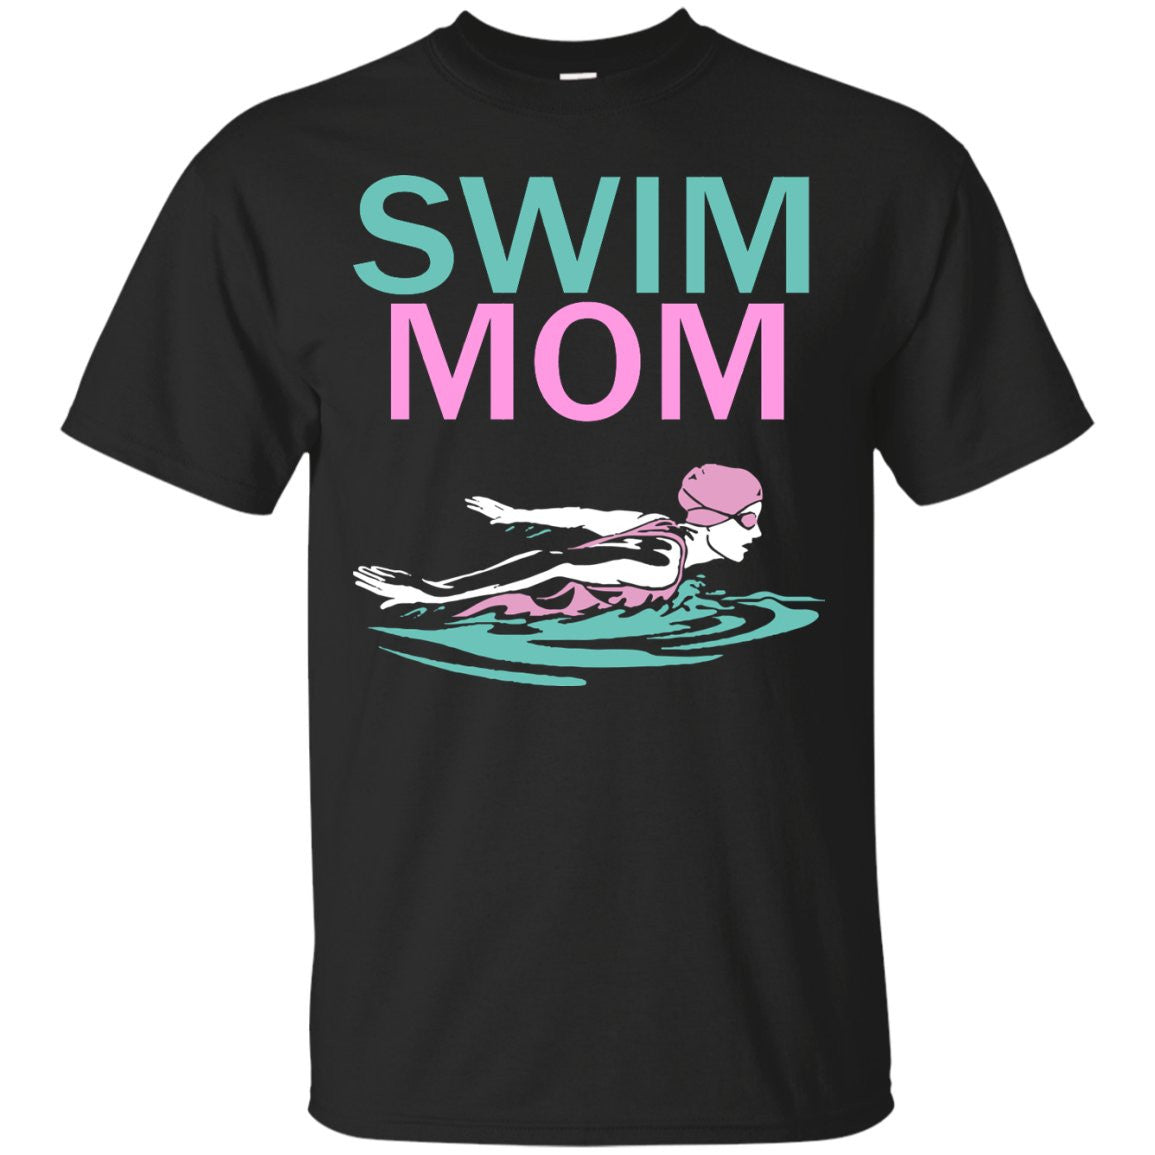 Competitive Swimming Shirt For Mom